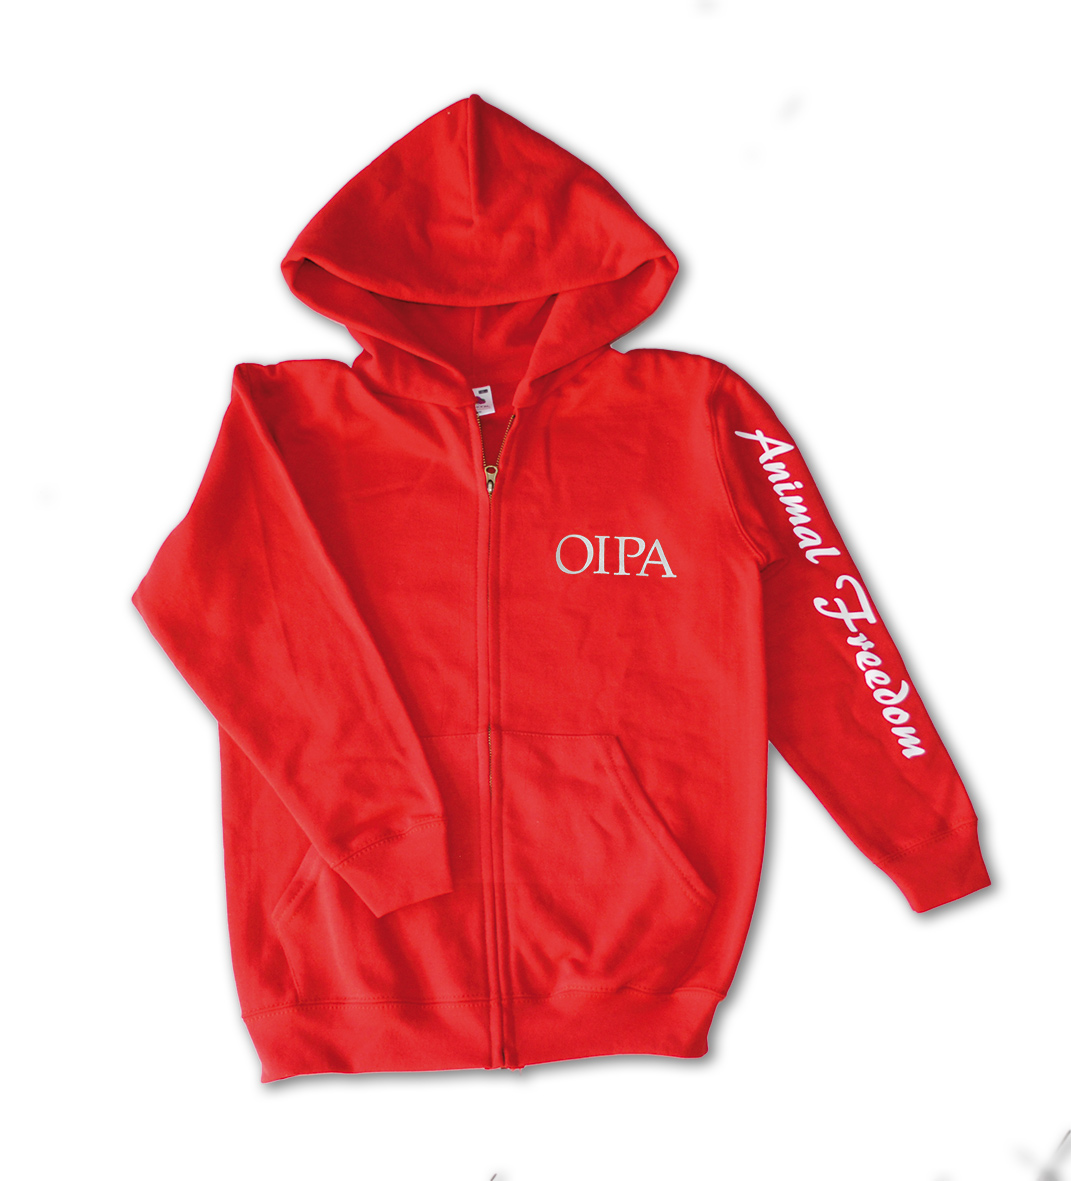 outlet store f0d91 436c8 FELPA DONNA ROSSO